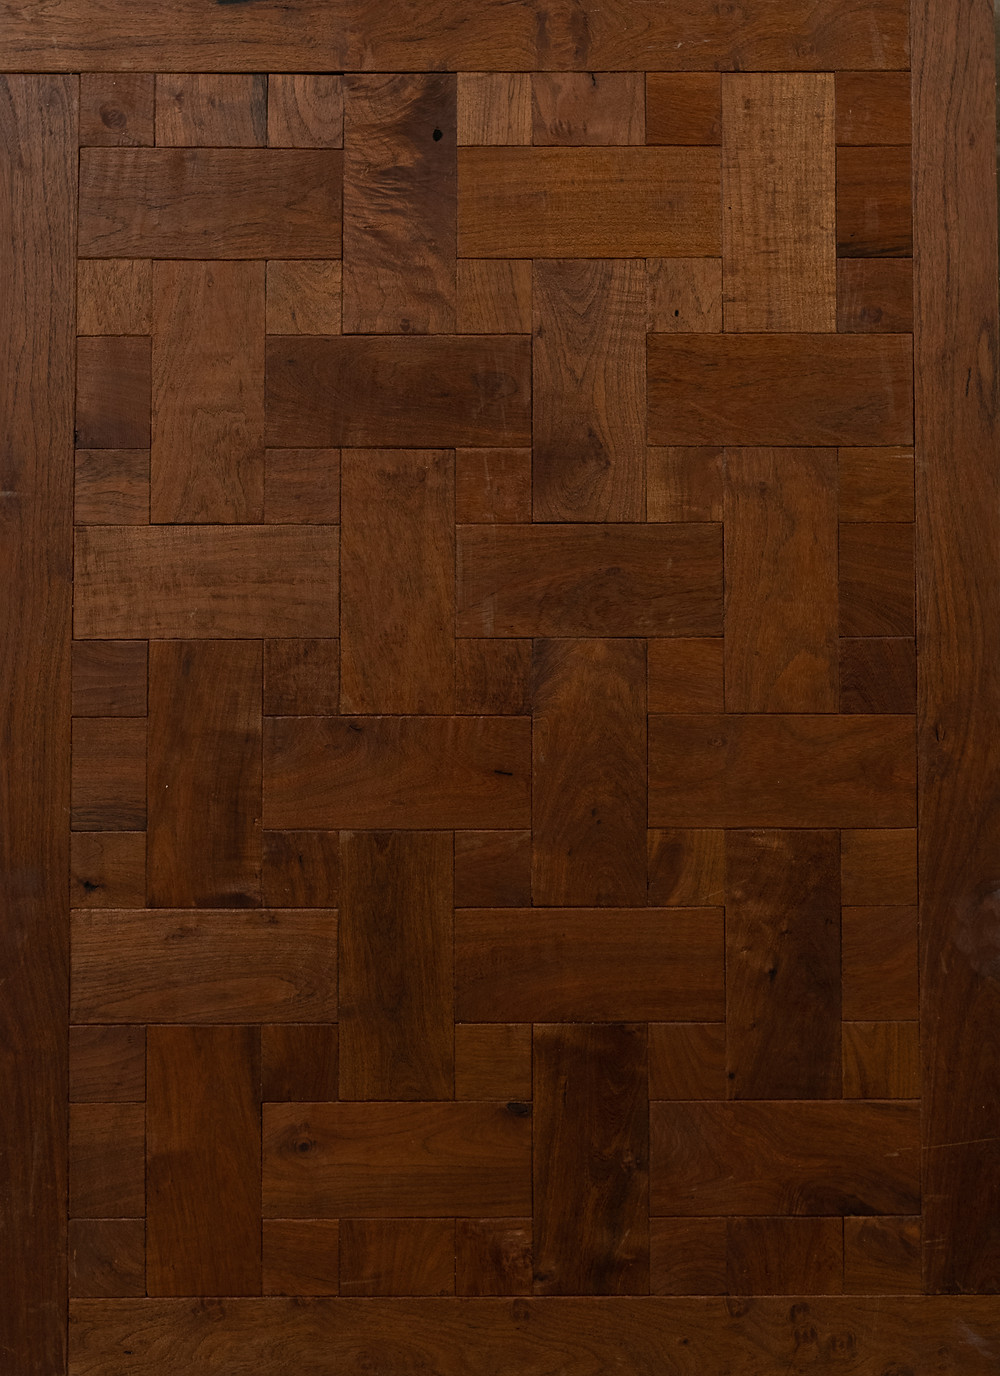 hardwood-flooring-pattern-basket-weave